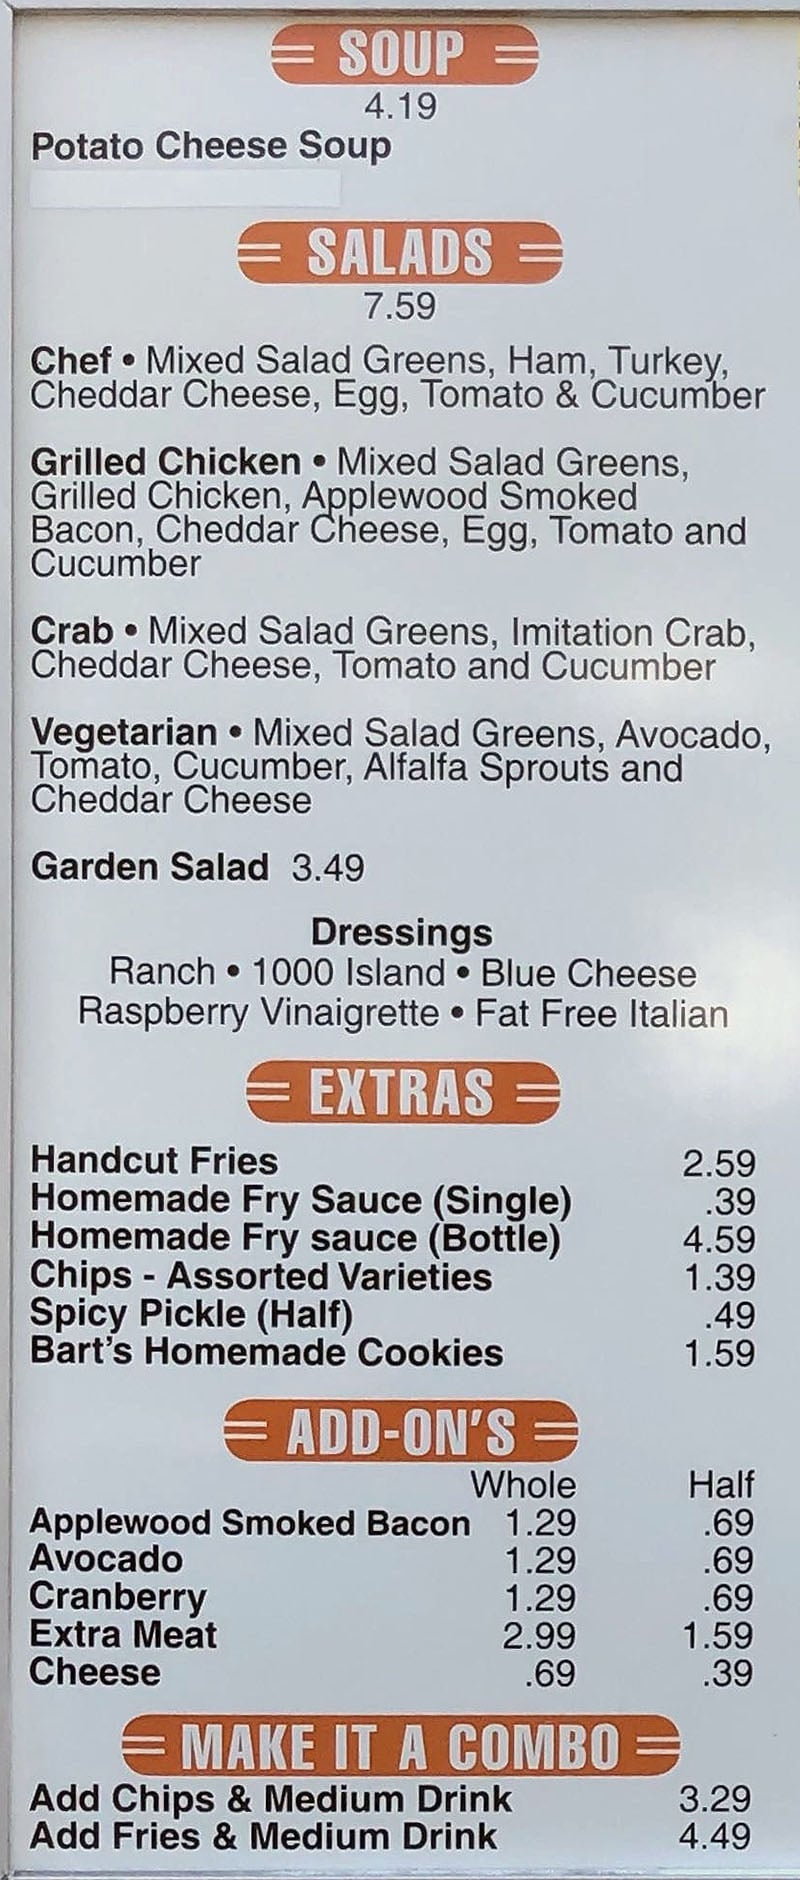 Riley's Sandwiches menu - soup, salads, extras, add ons, combo